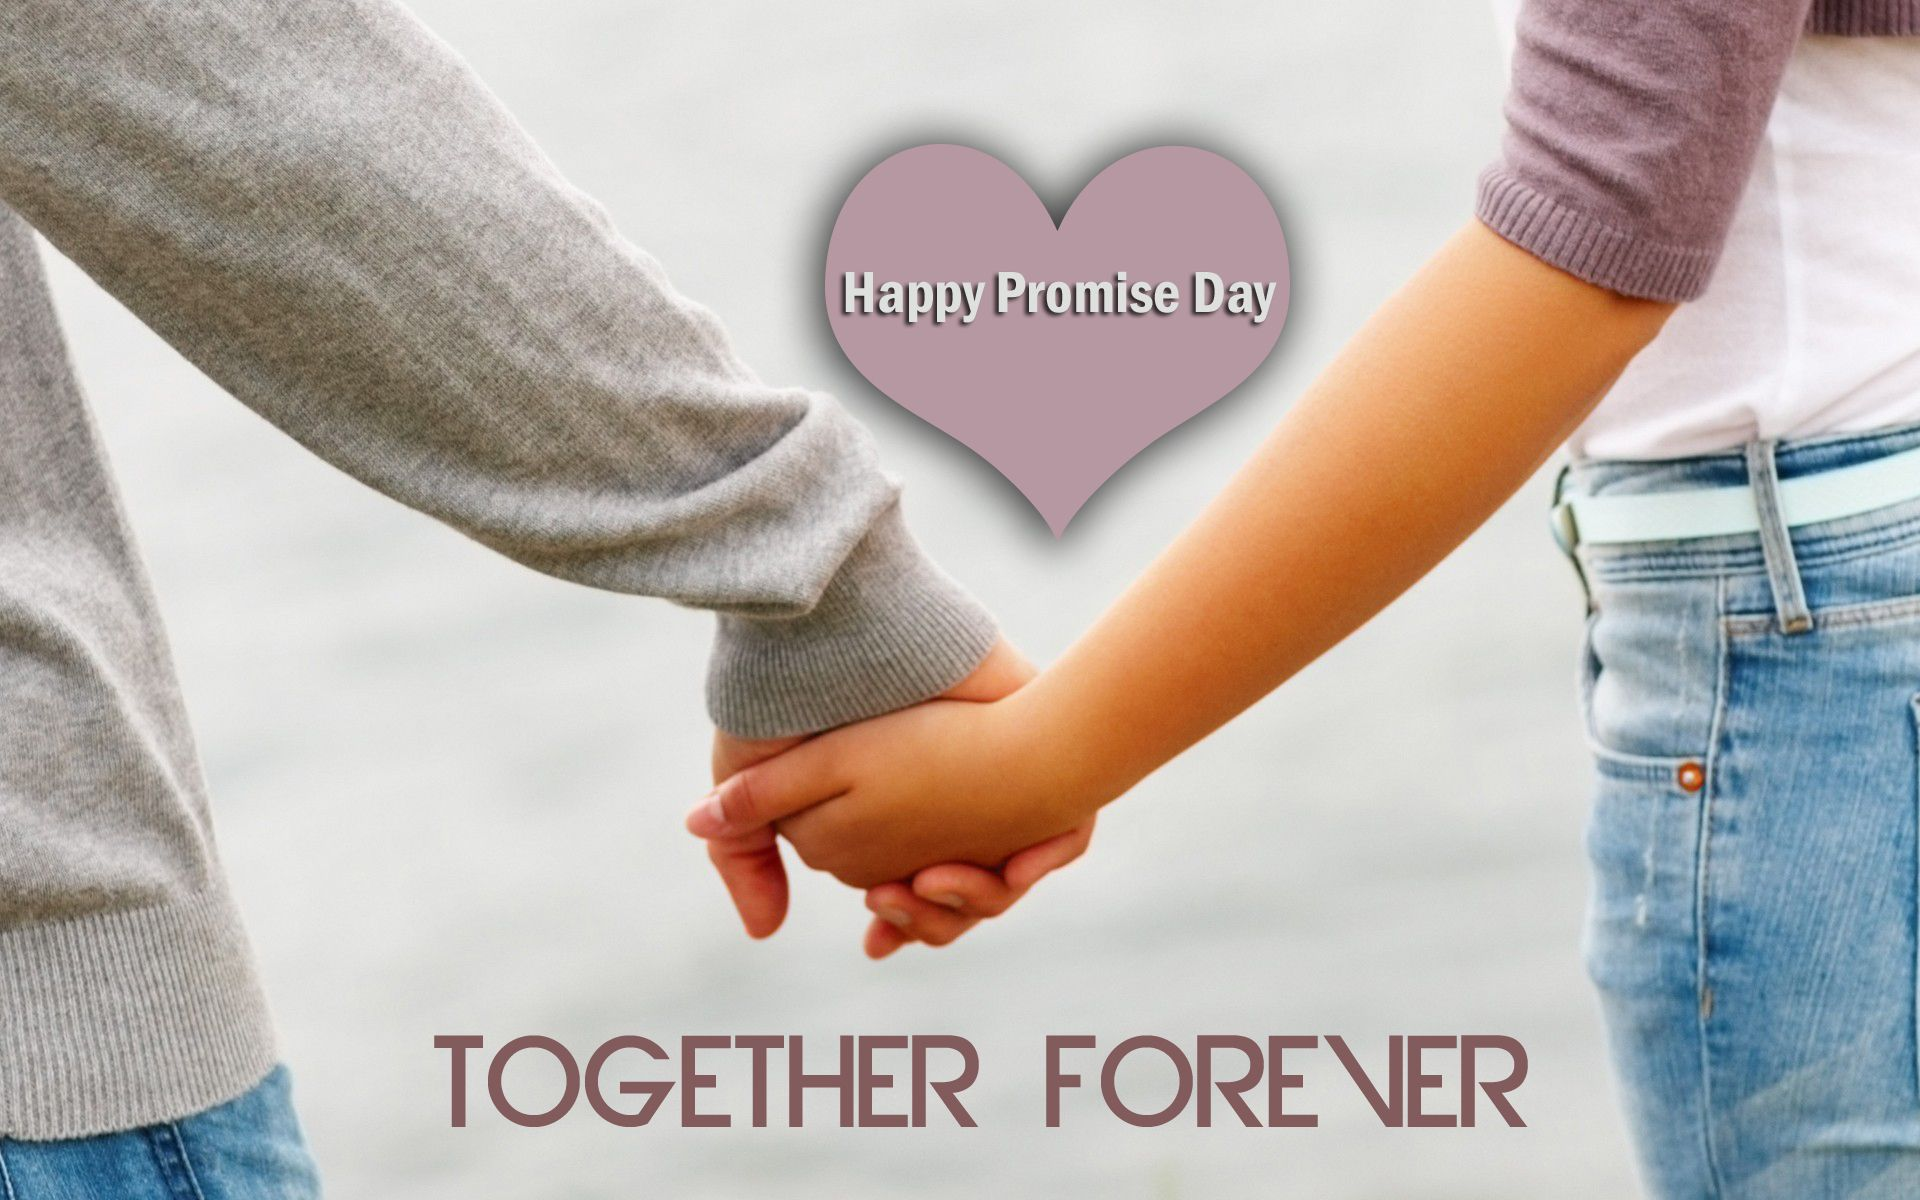 Happy Promise Day 2015 Free Stock Photo Http Wallucky Com Happy Promise Day 2015 Free Stock Photo Happy Promise Day Promise Day Images Promise Day Messages